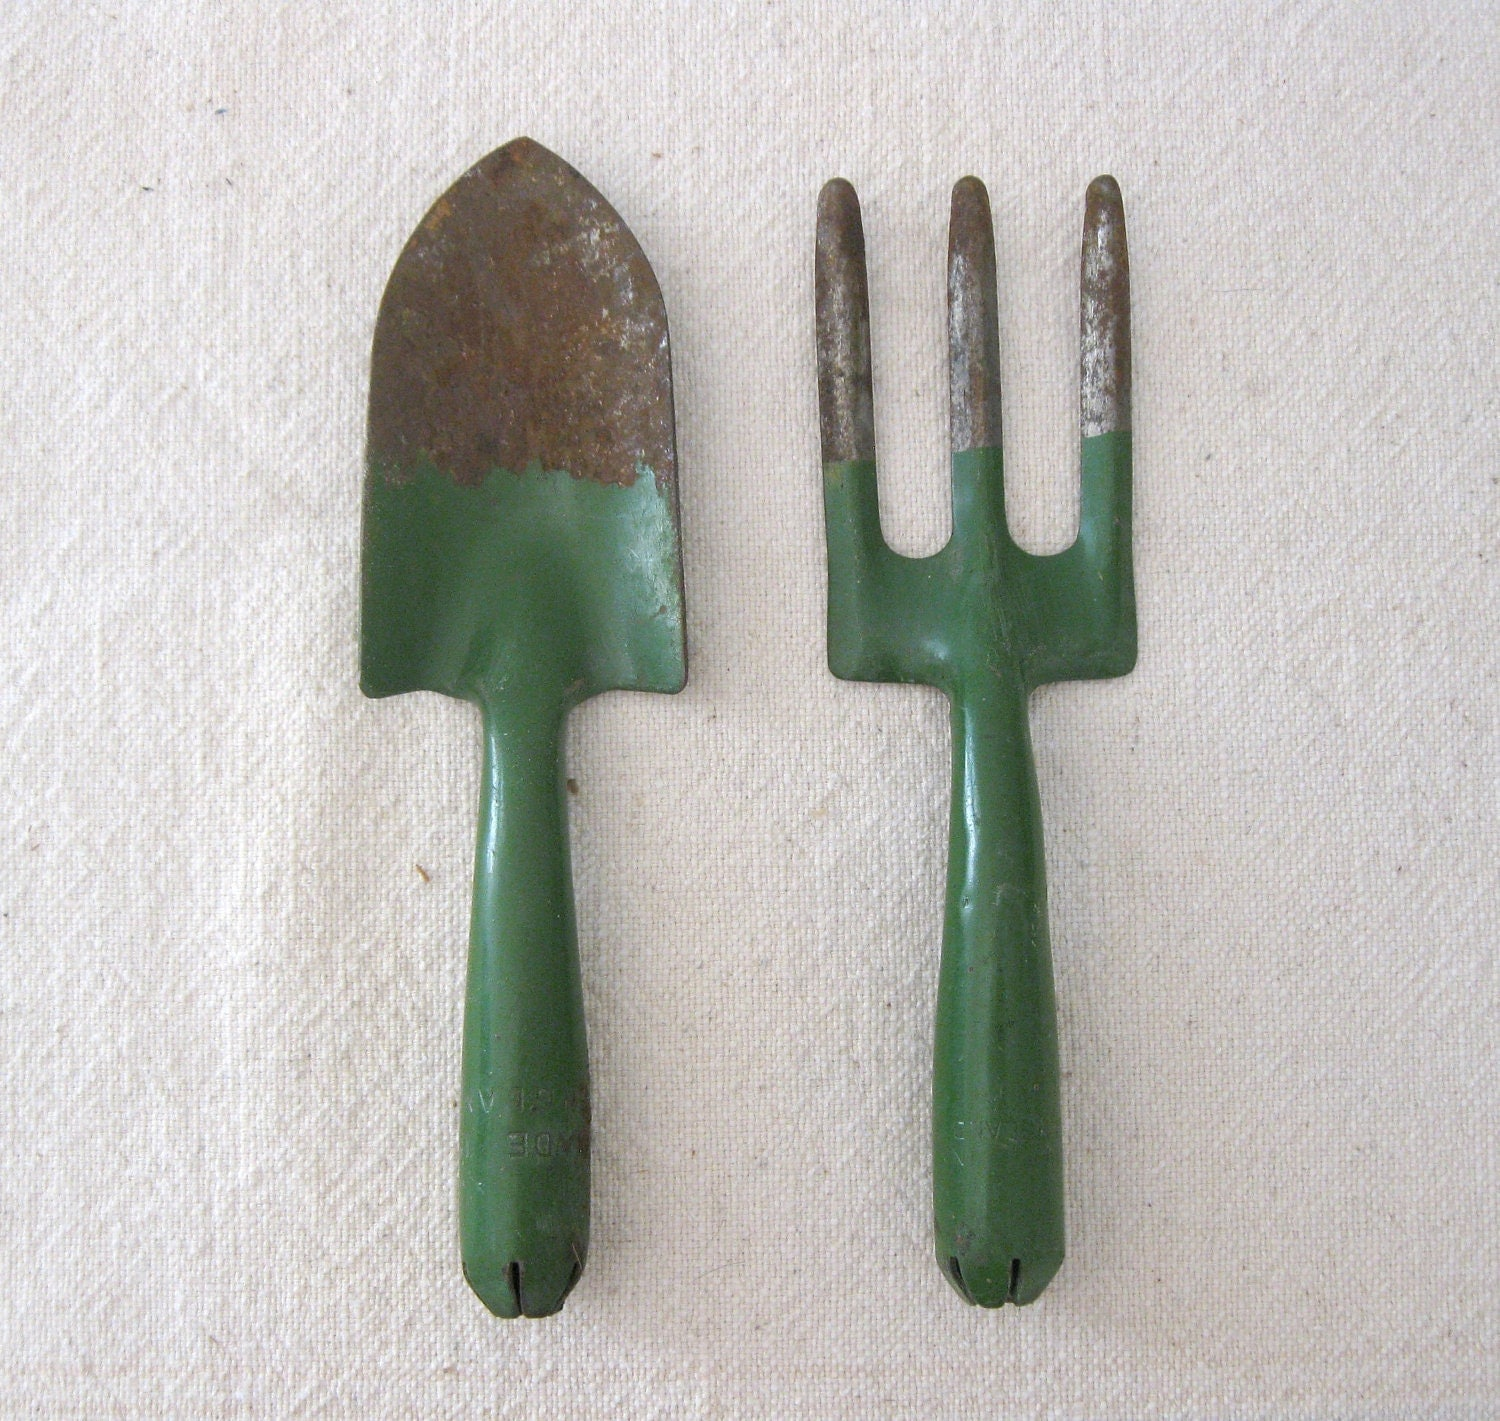 Vintage garden tools green shovel and fork metal hand tools for Gardening tools vintage